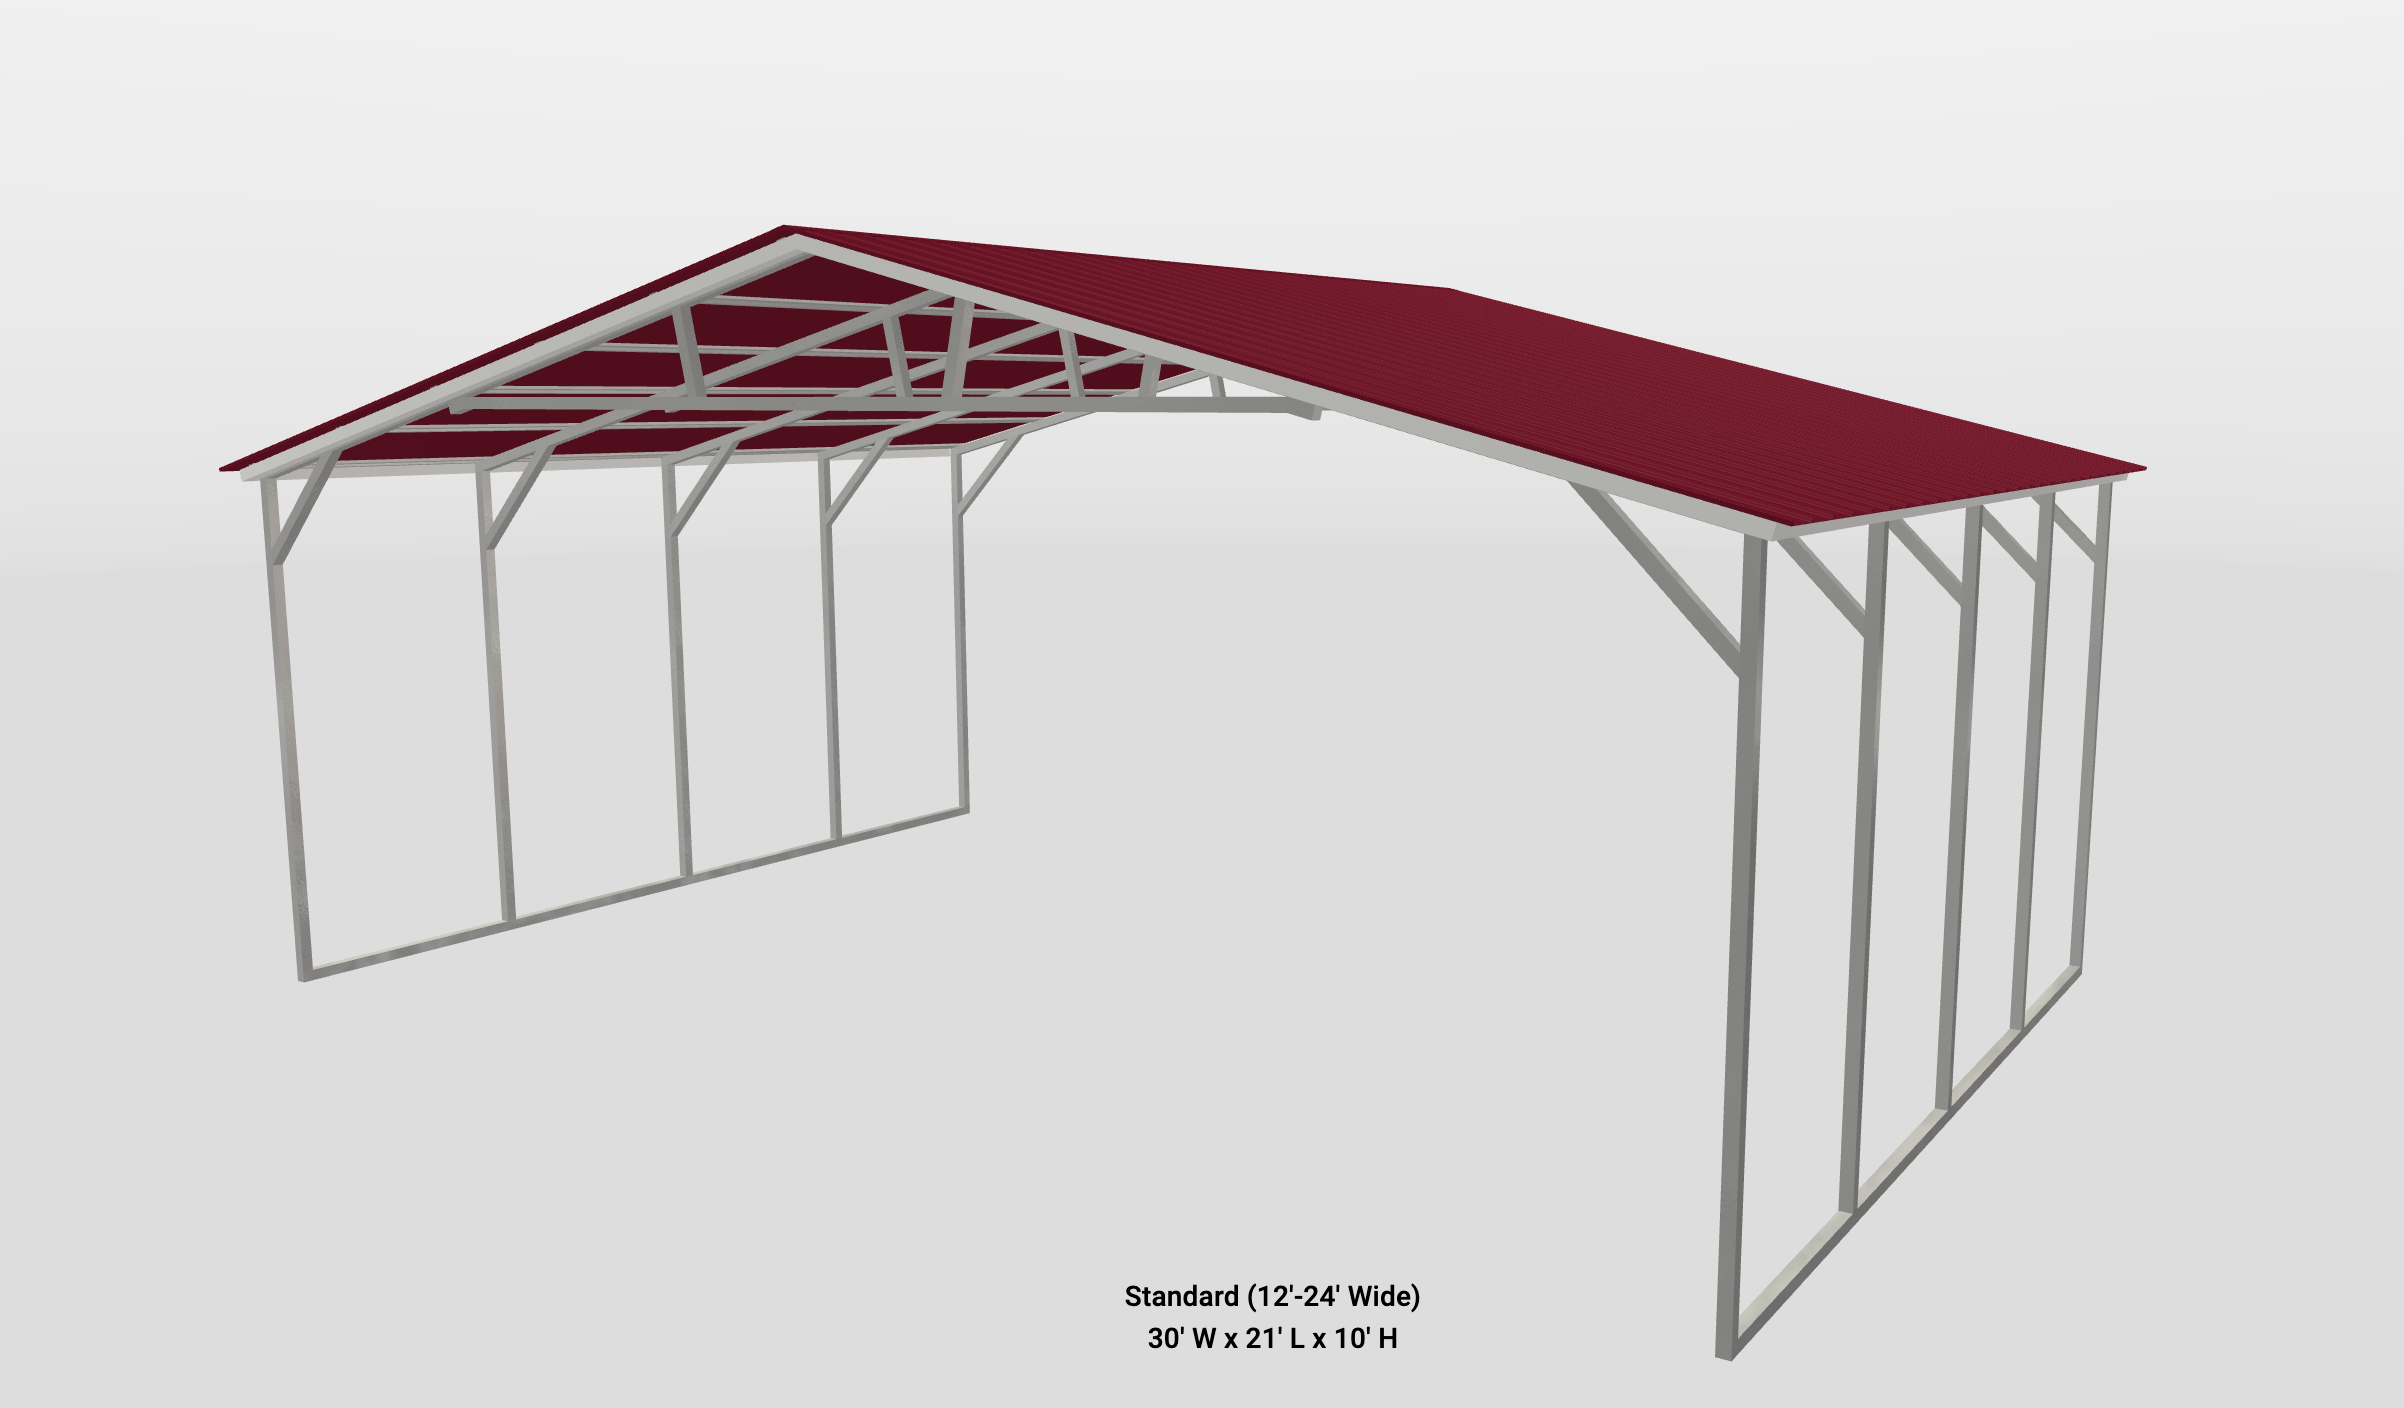 Standard metal building with read roof and white trim